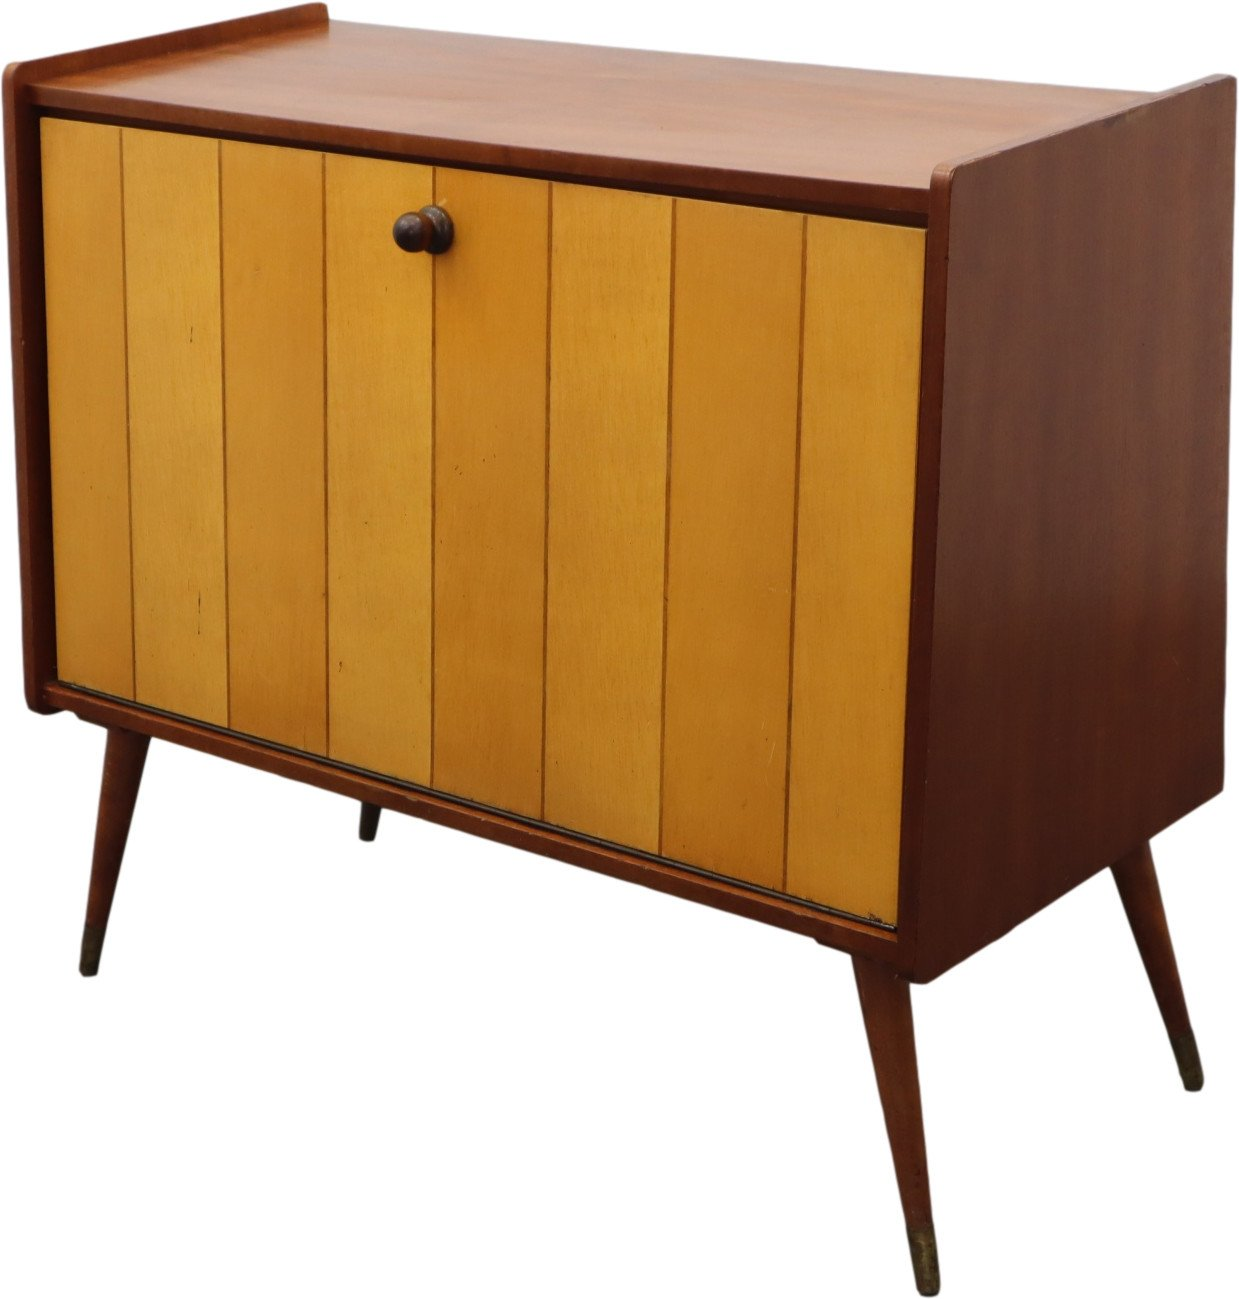 Cabinet, 1960s - 503610 - photo